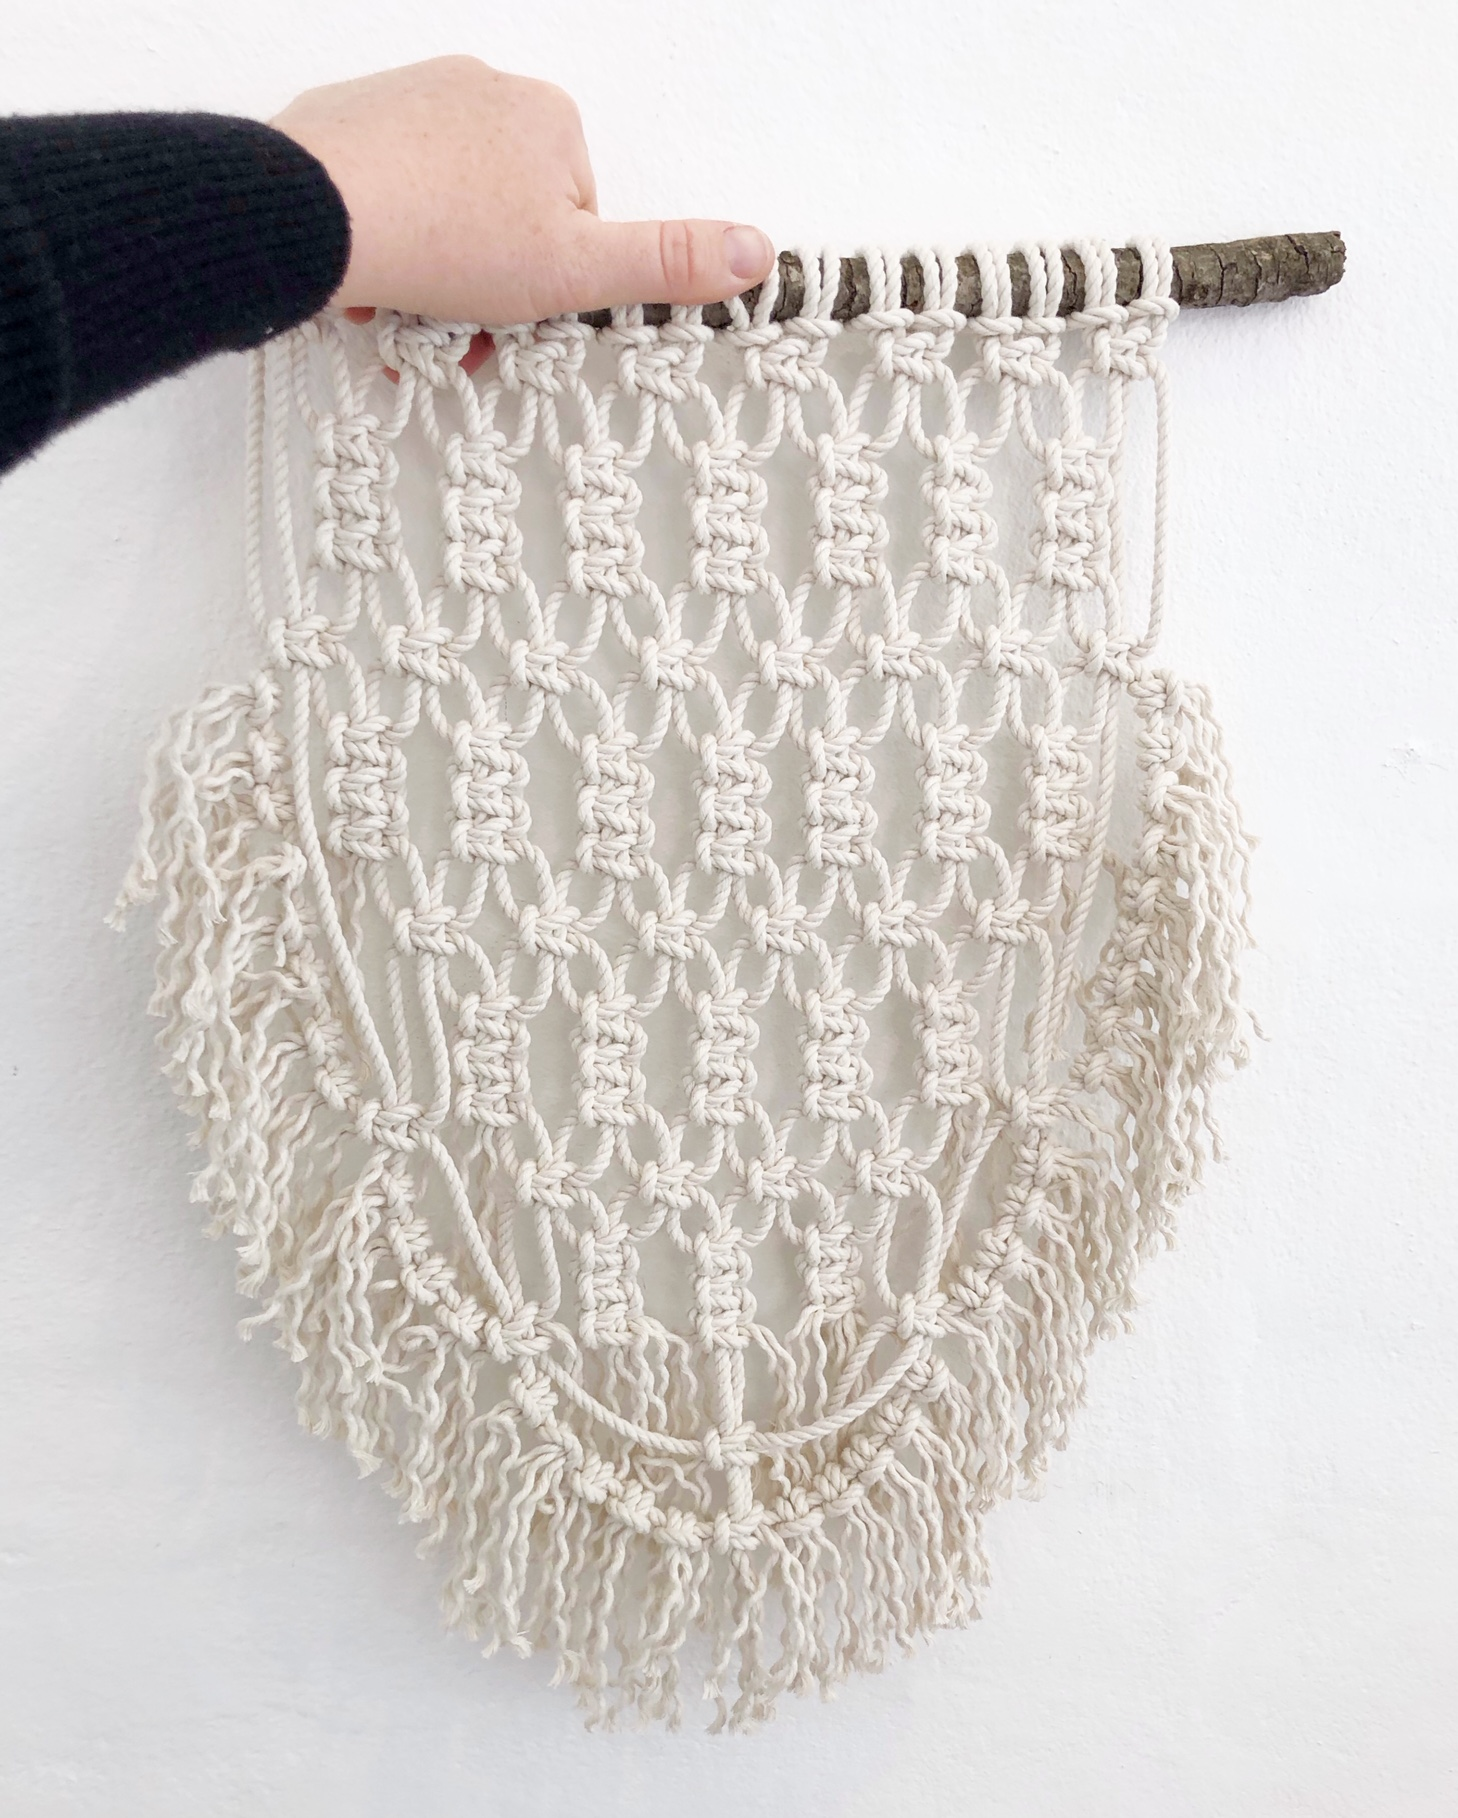 The Corner Store Gallery Macrame for Beginners Workshop